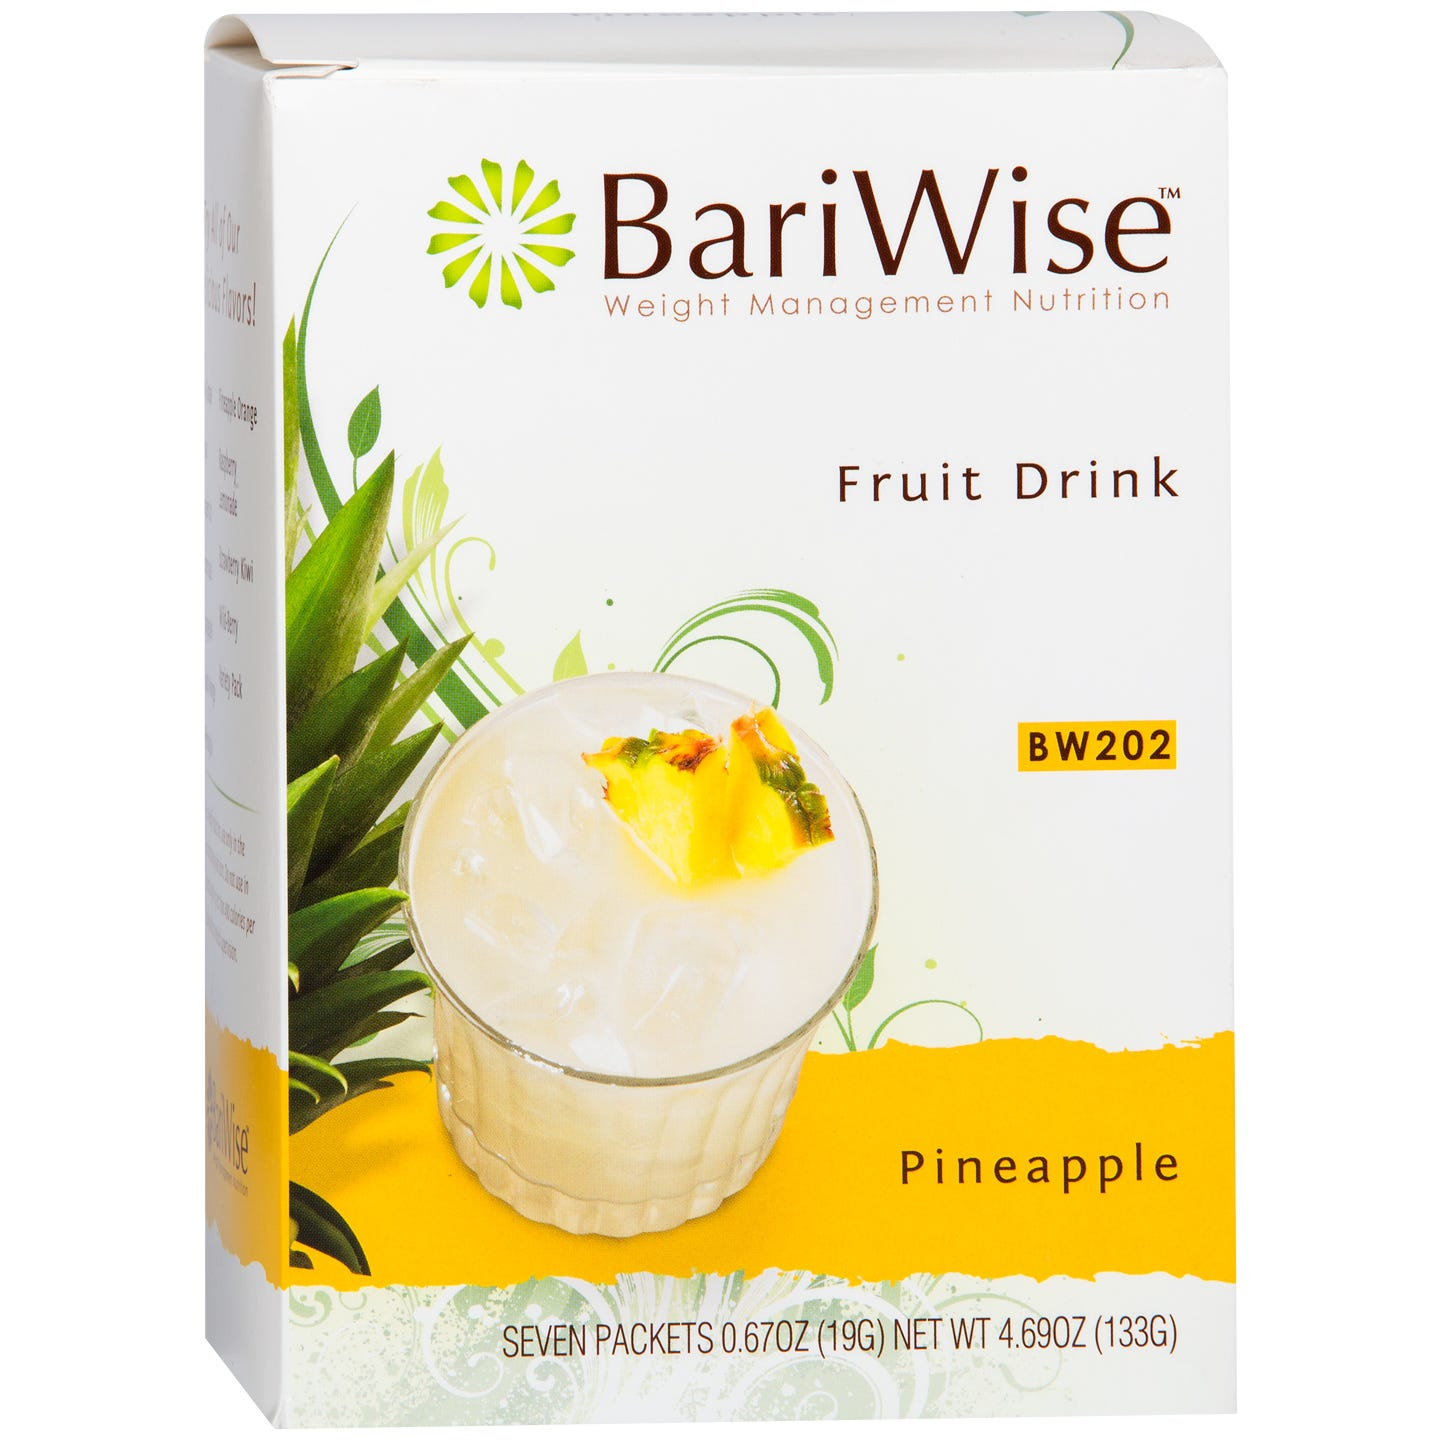 Protein Diet Fruit Drink Pineapple (7 Ct) - BariWise